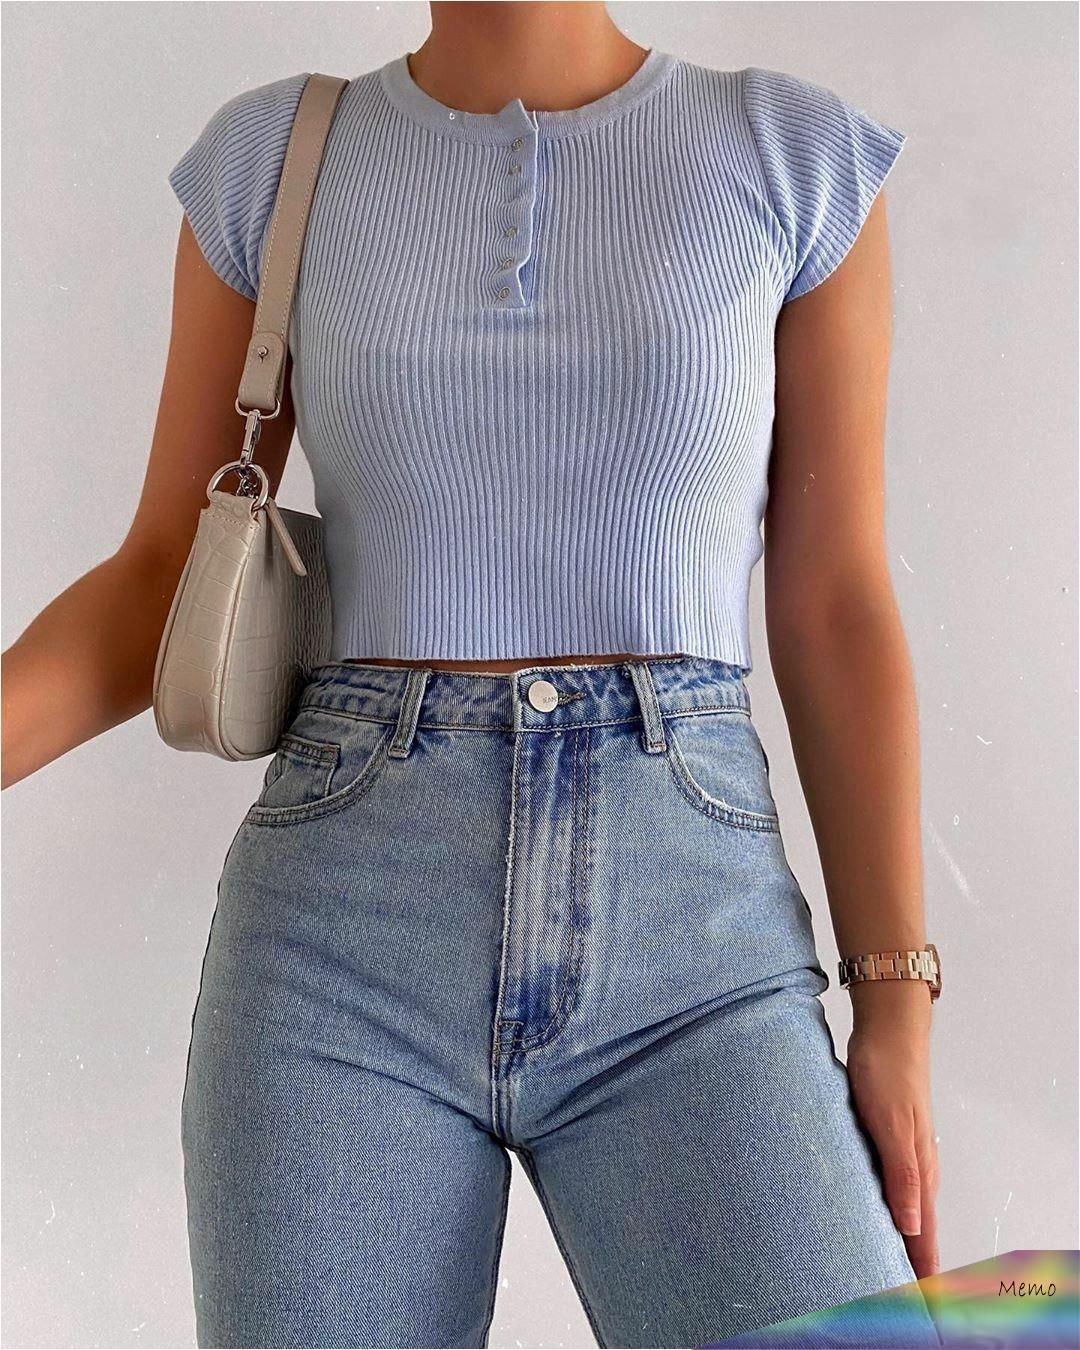 On April 29, 2020 Fashion Inspiration And Trend Of Outfits For A Casual Look –  …